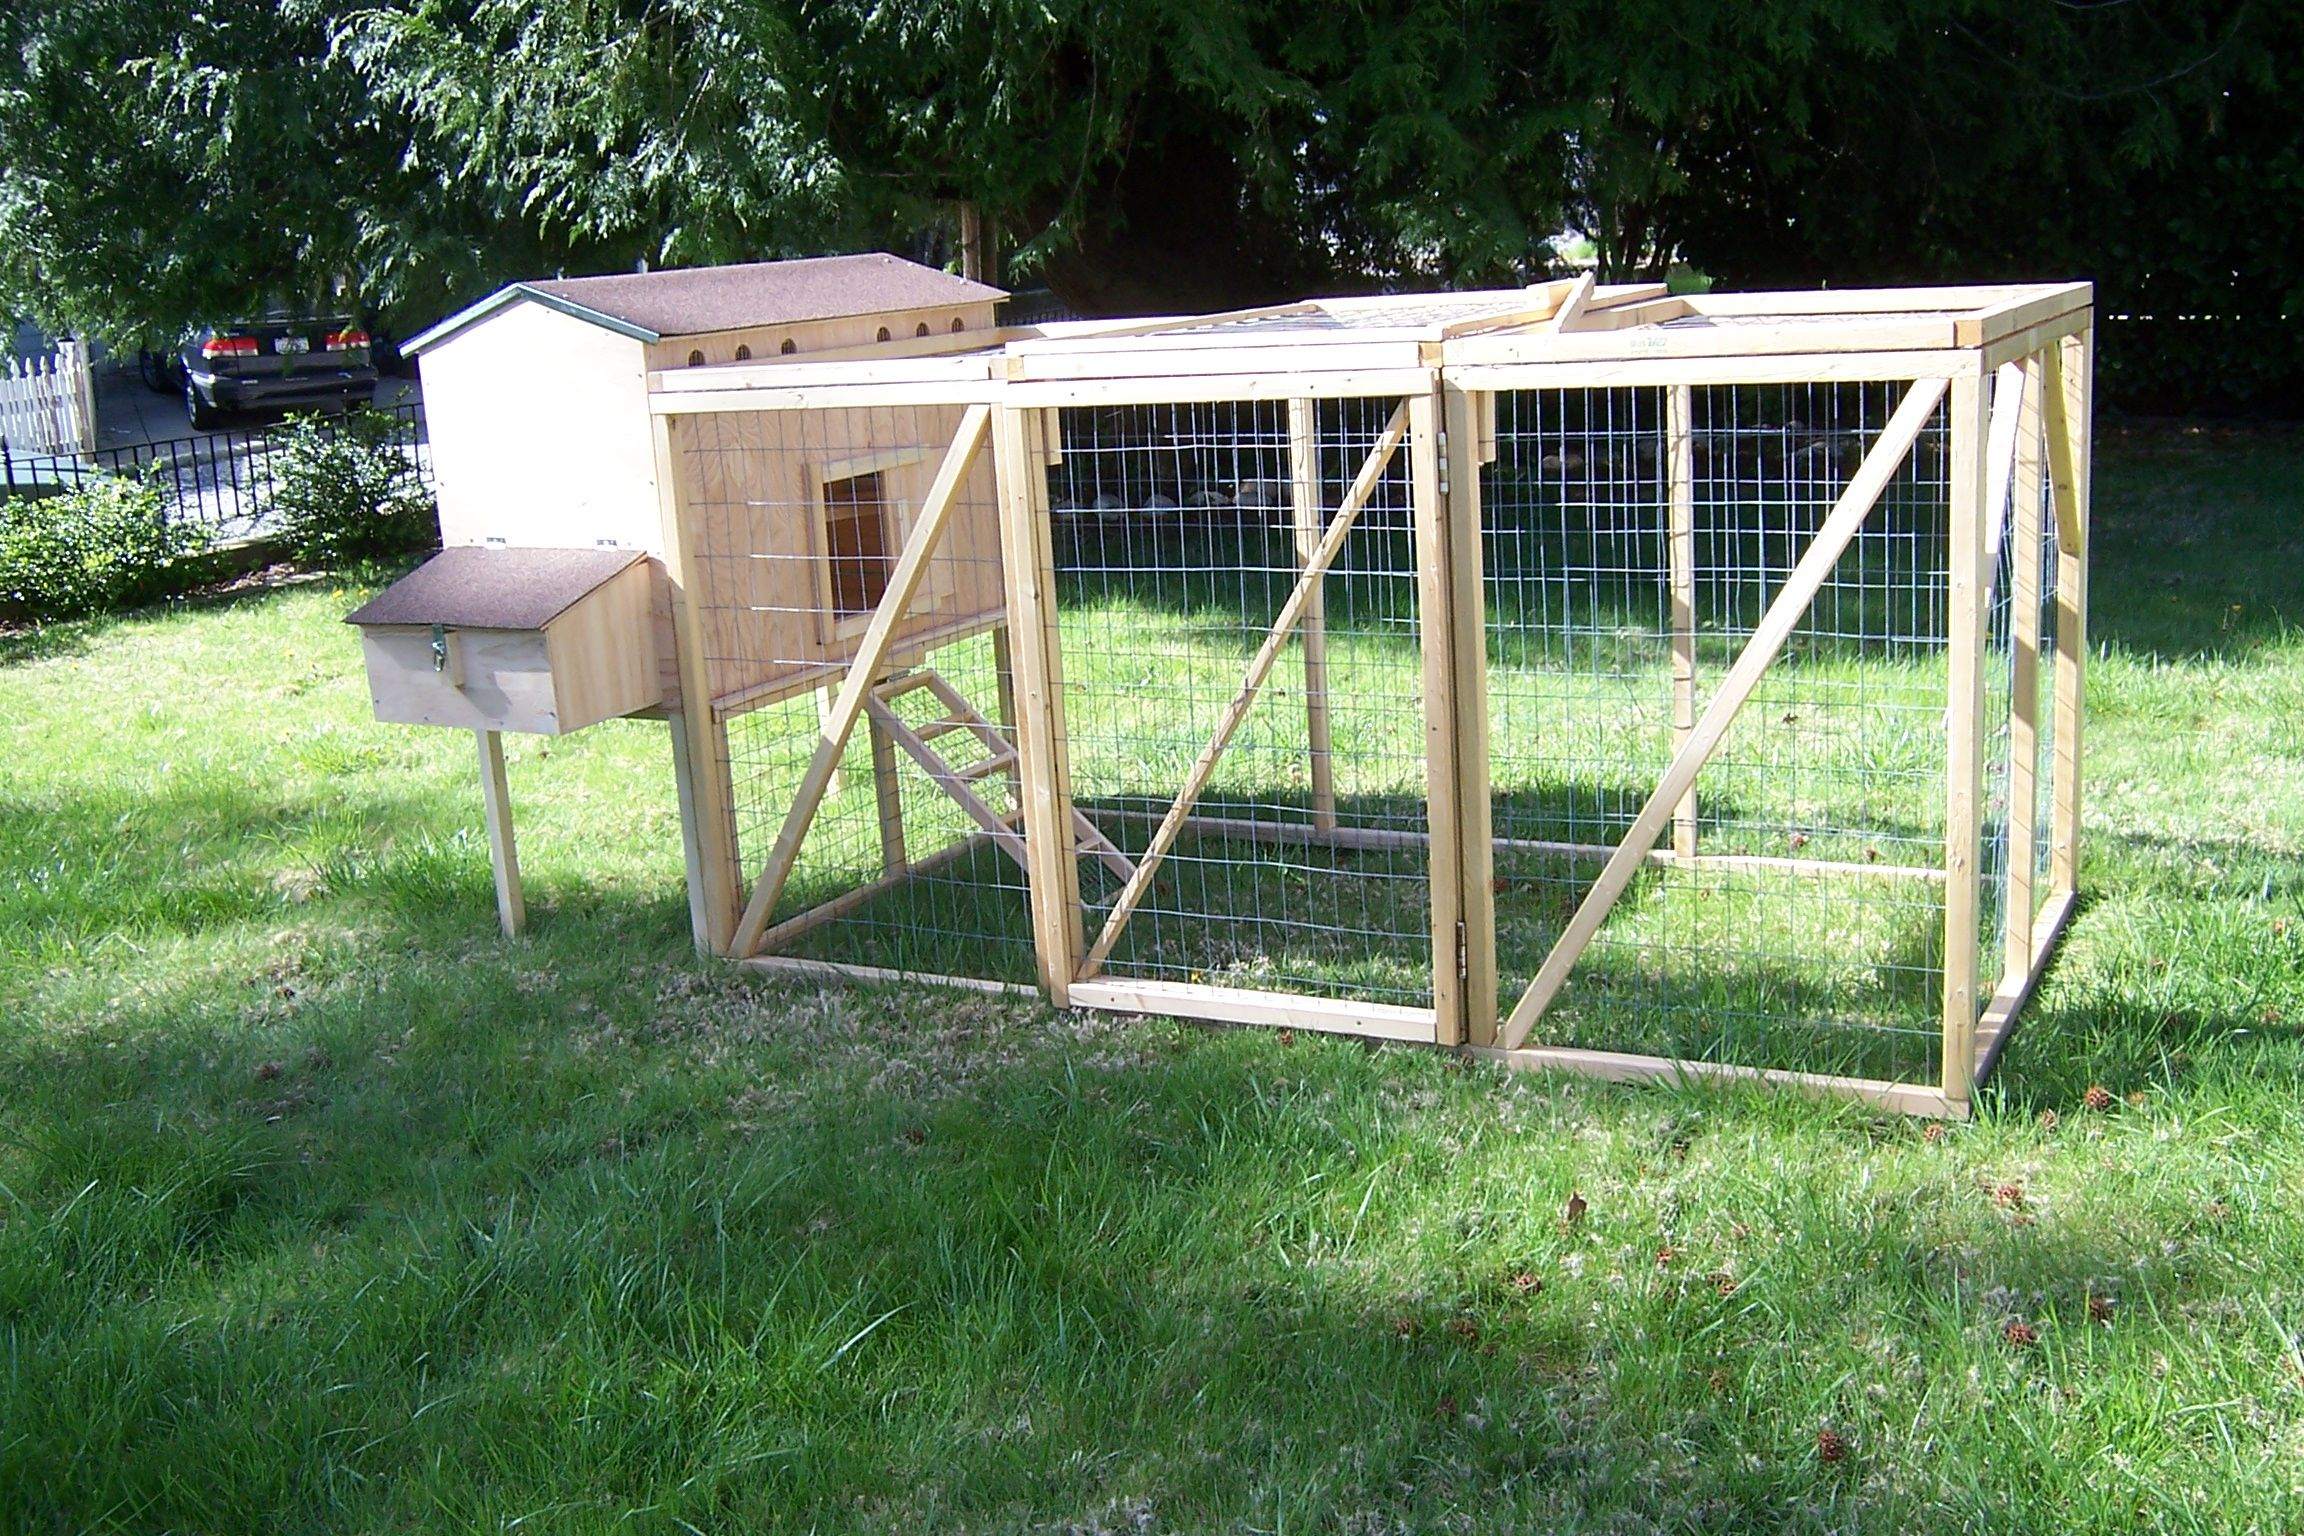 Family hen house diy starter kit 5 6 chickens from my for Chicken coop kits for 12 chickens